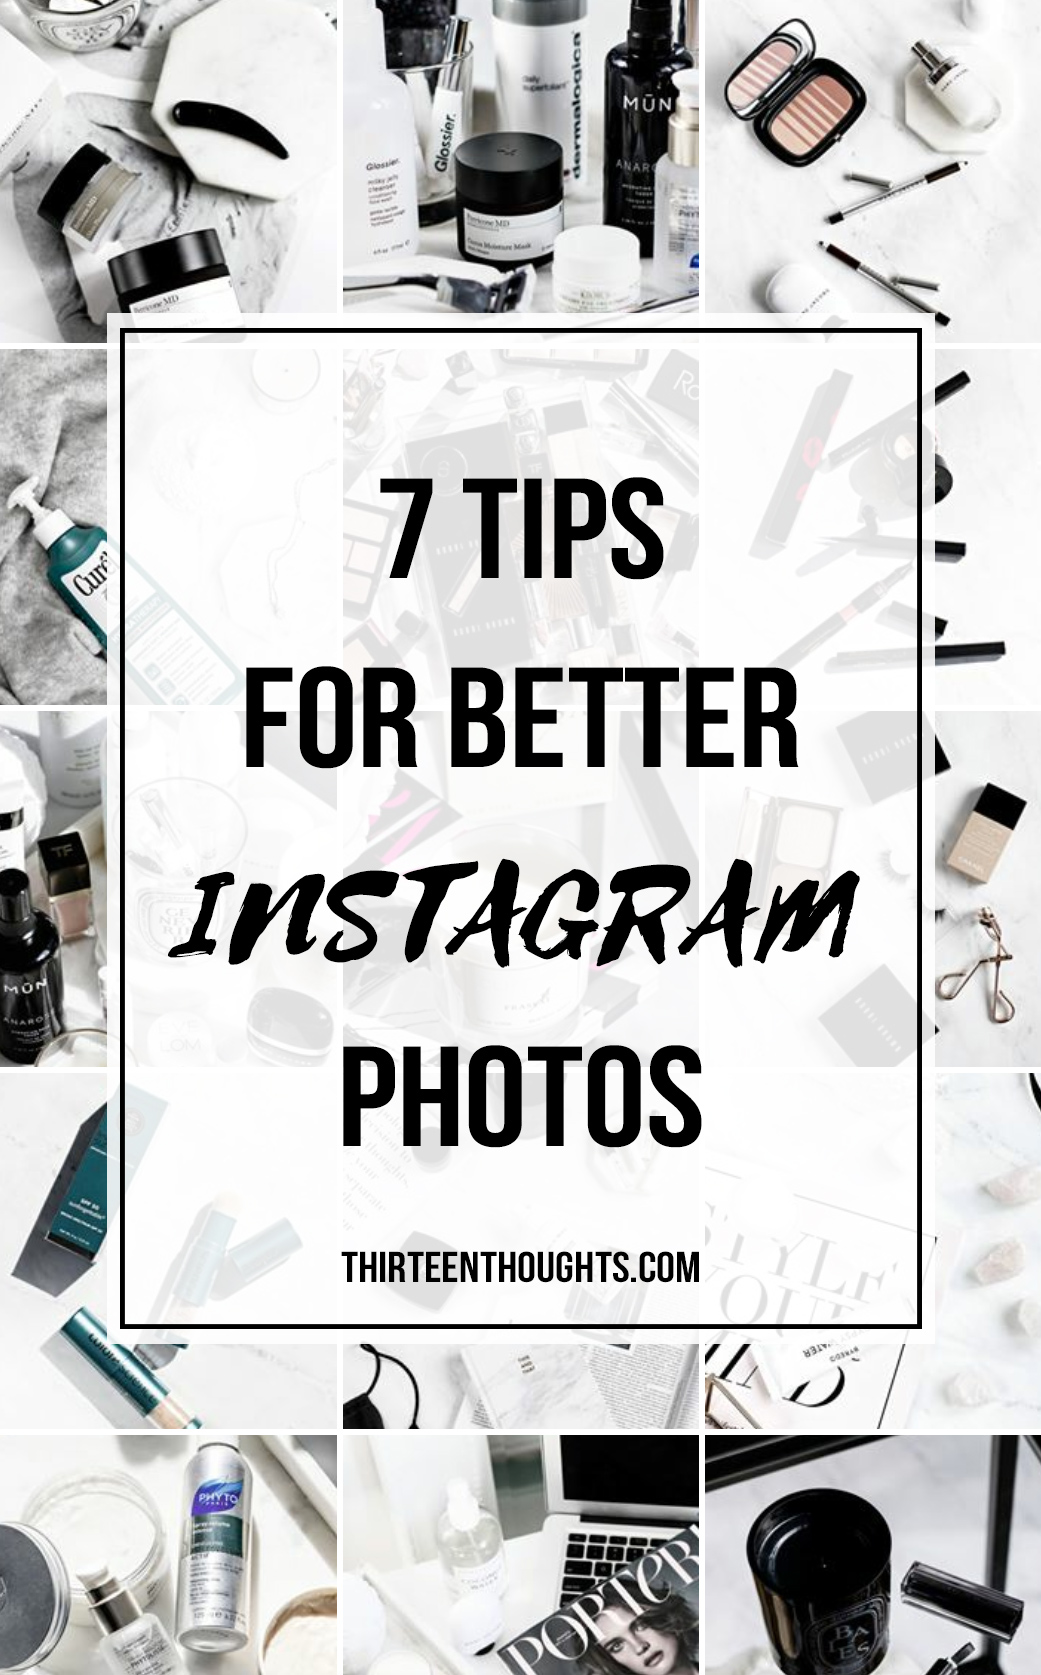 Tips for Better Instagram Photos #blogging #bloggingtips #Instagram #photography